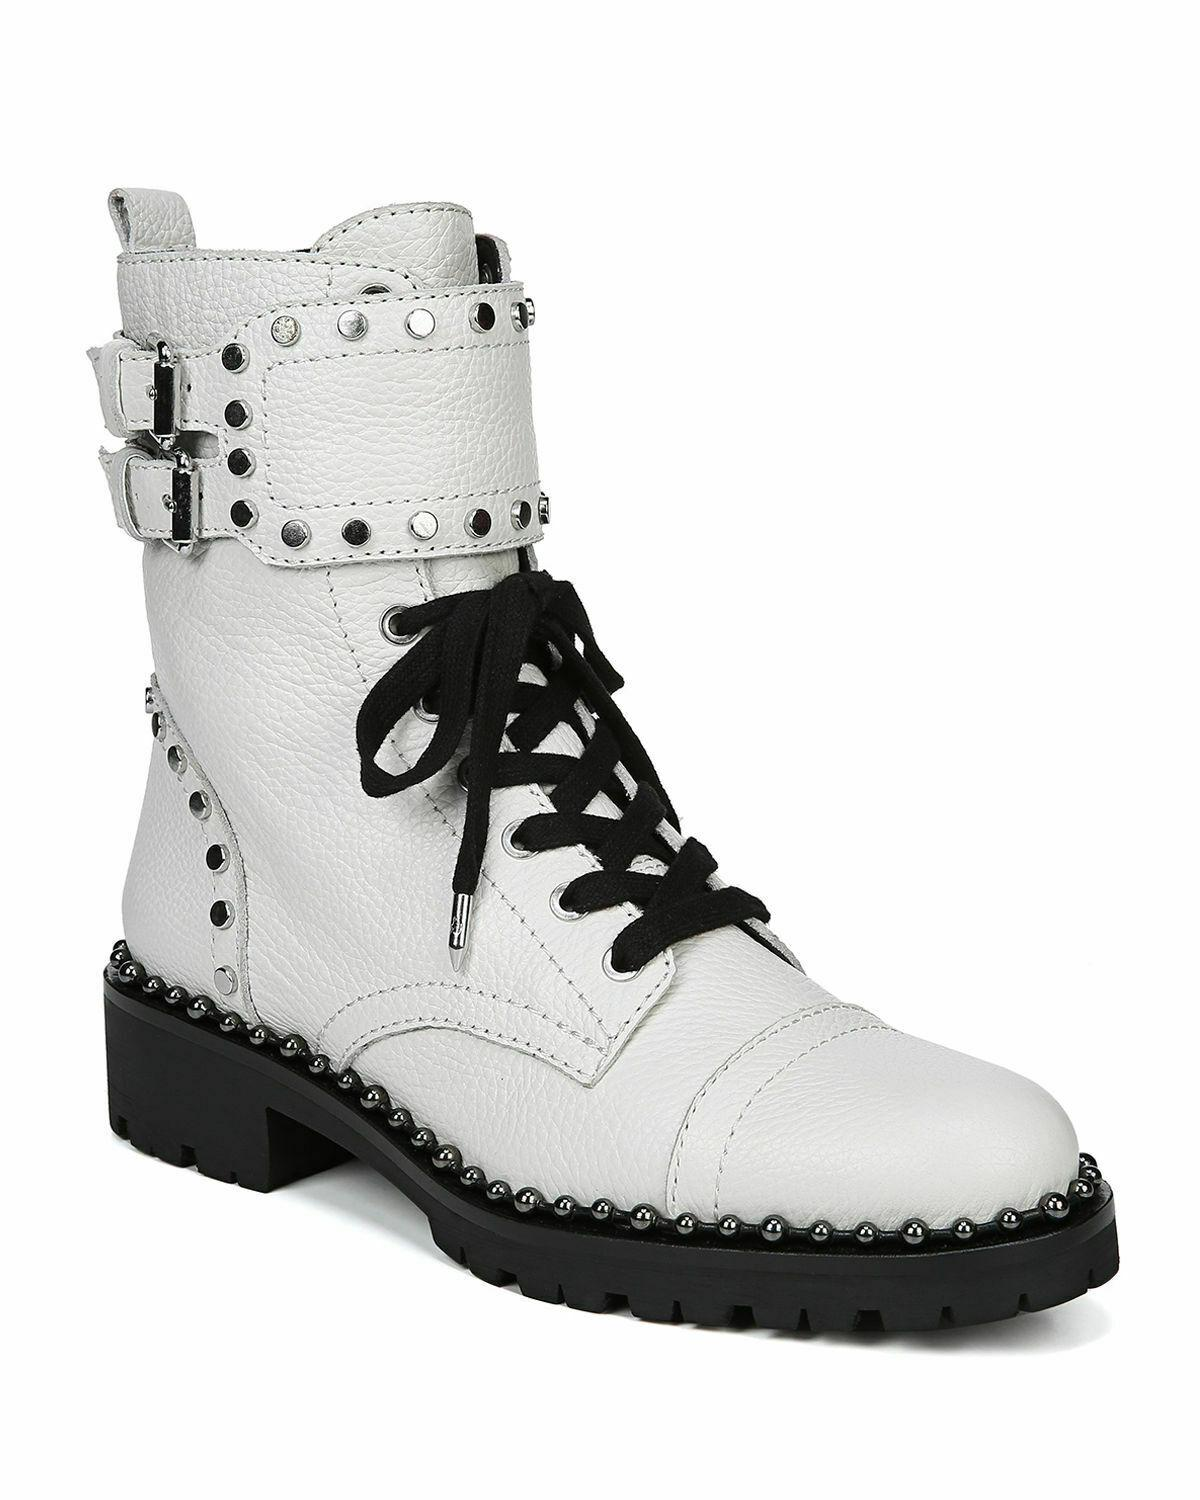 Sam Edelman Jennifer Combat Boots Studded Ankle Booties 8.5 White Leather